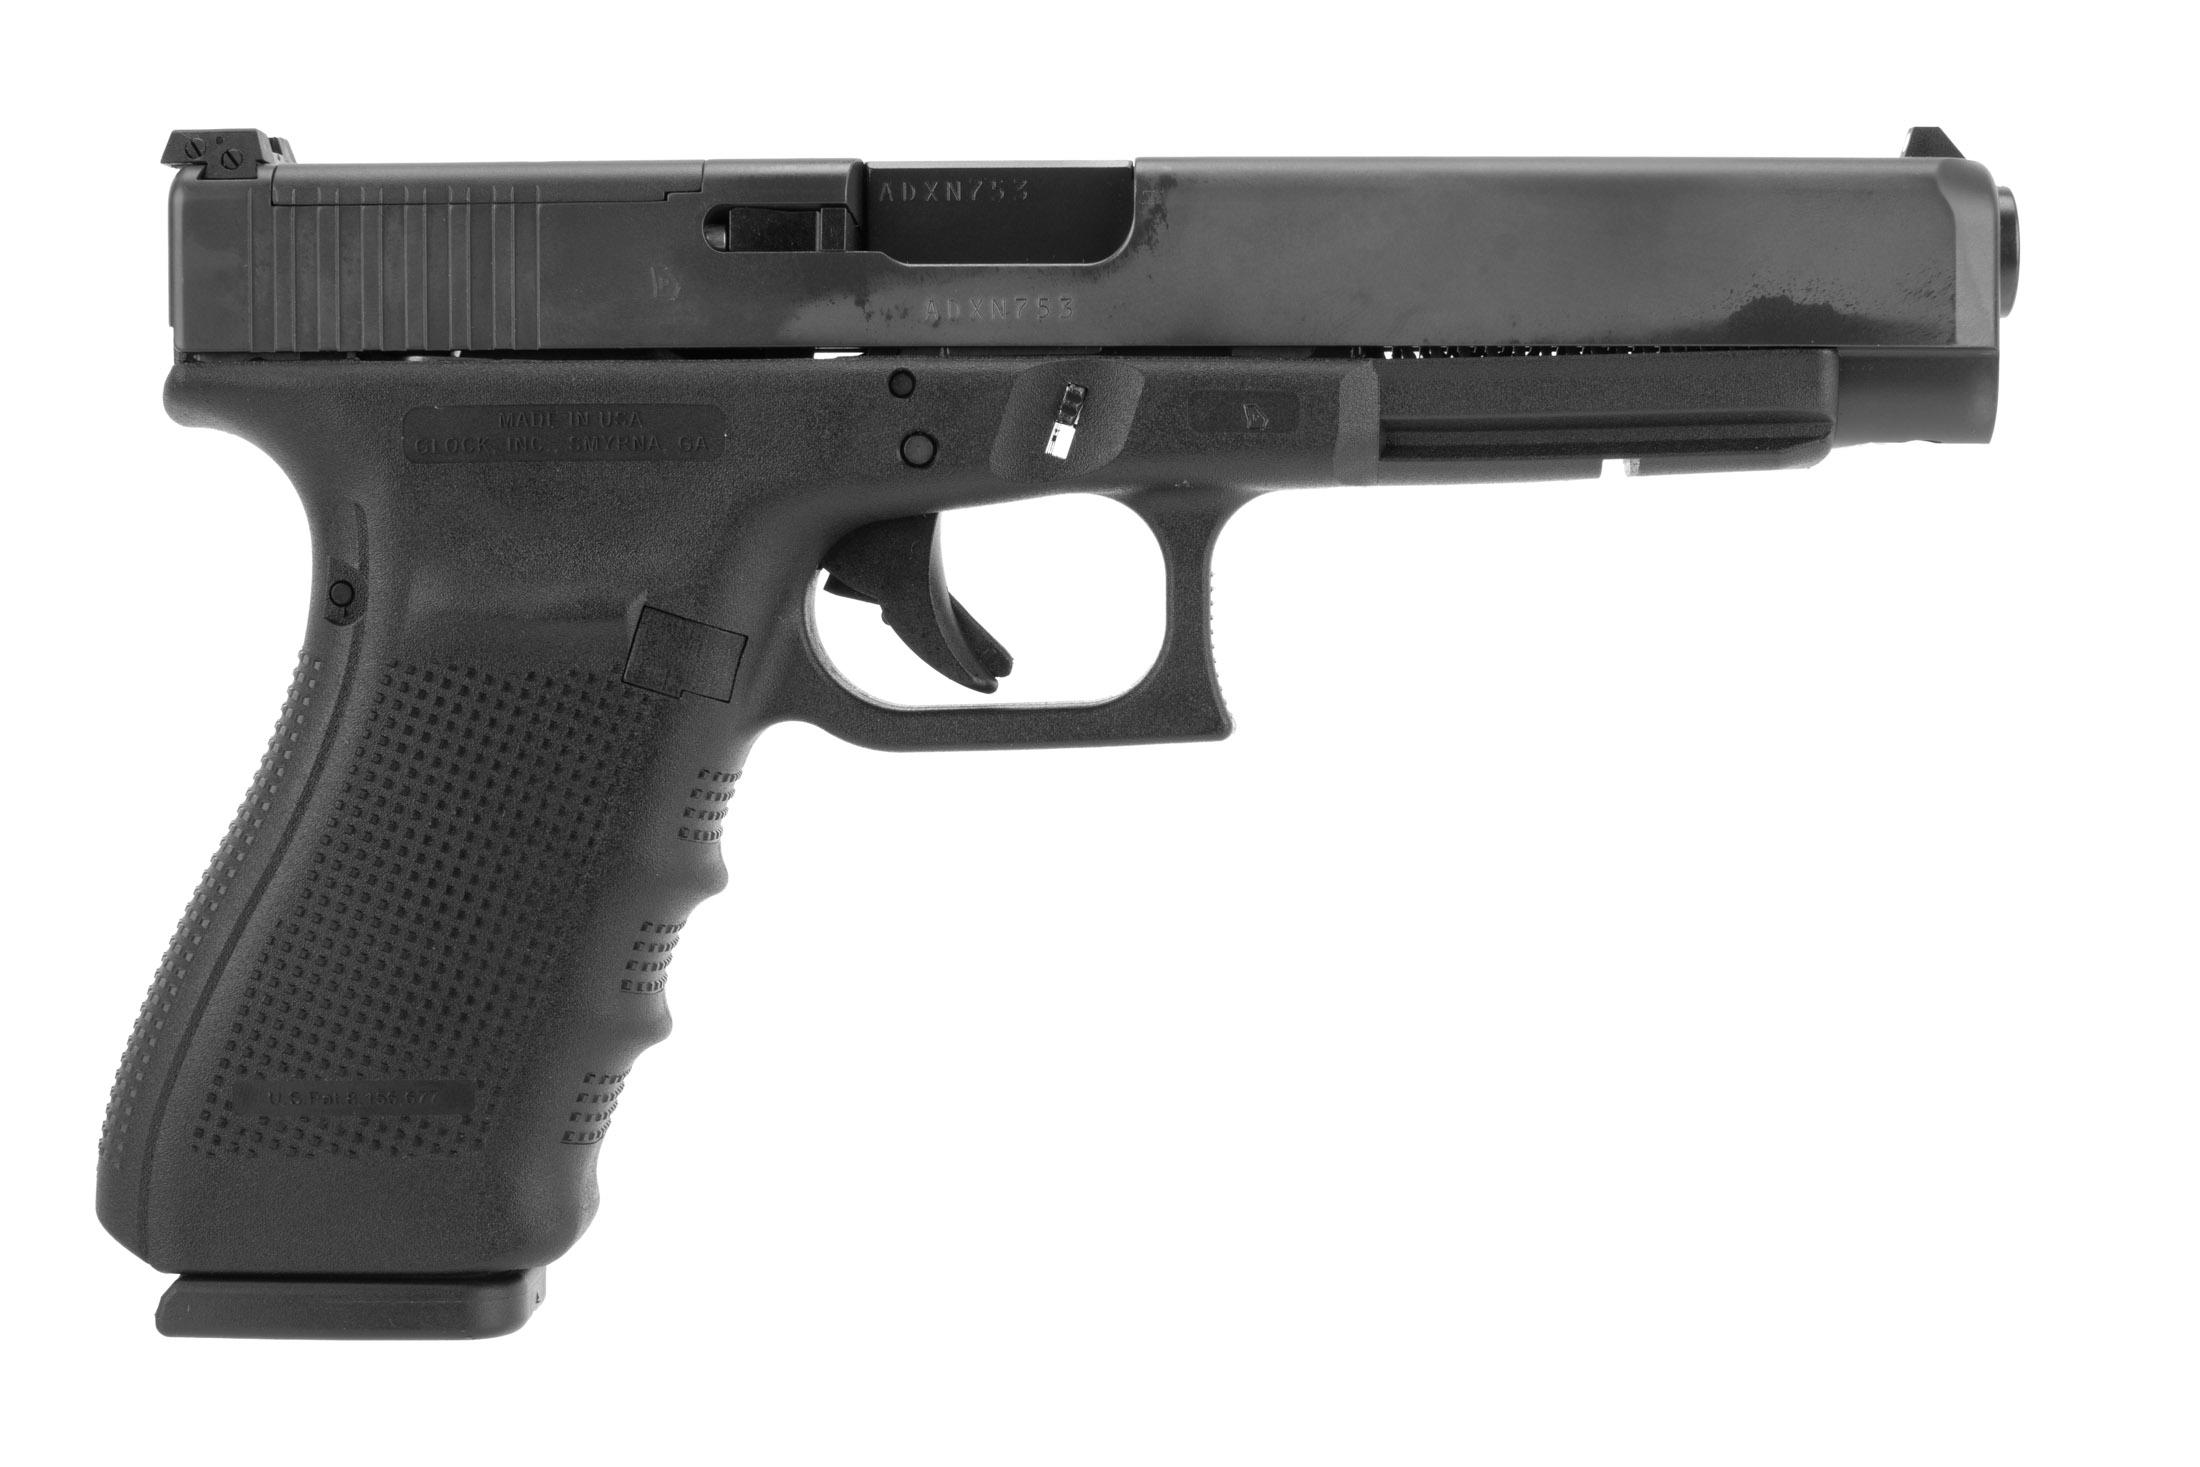 Glock Gen4 G41 MOS competition .45 ACP handgun with 5.31 barrel and 13-round magazines with optics ready slide